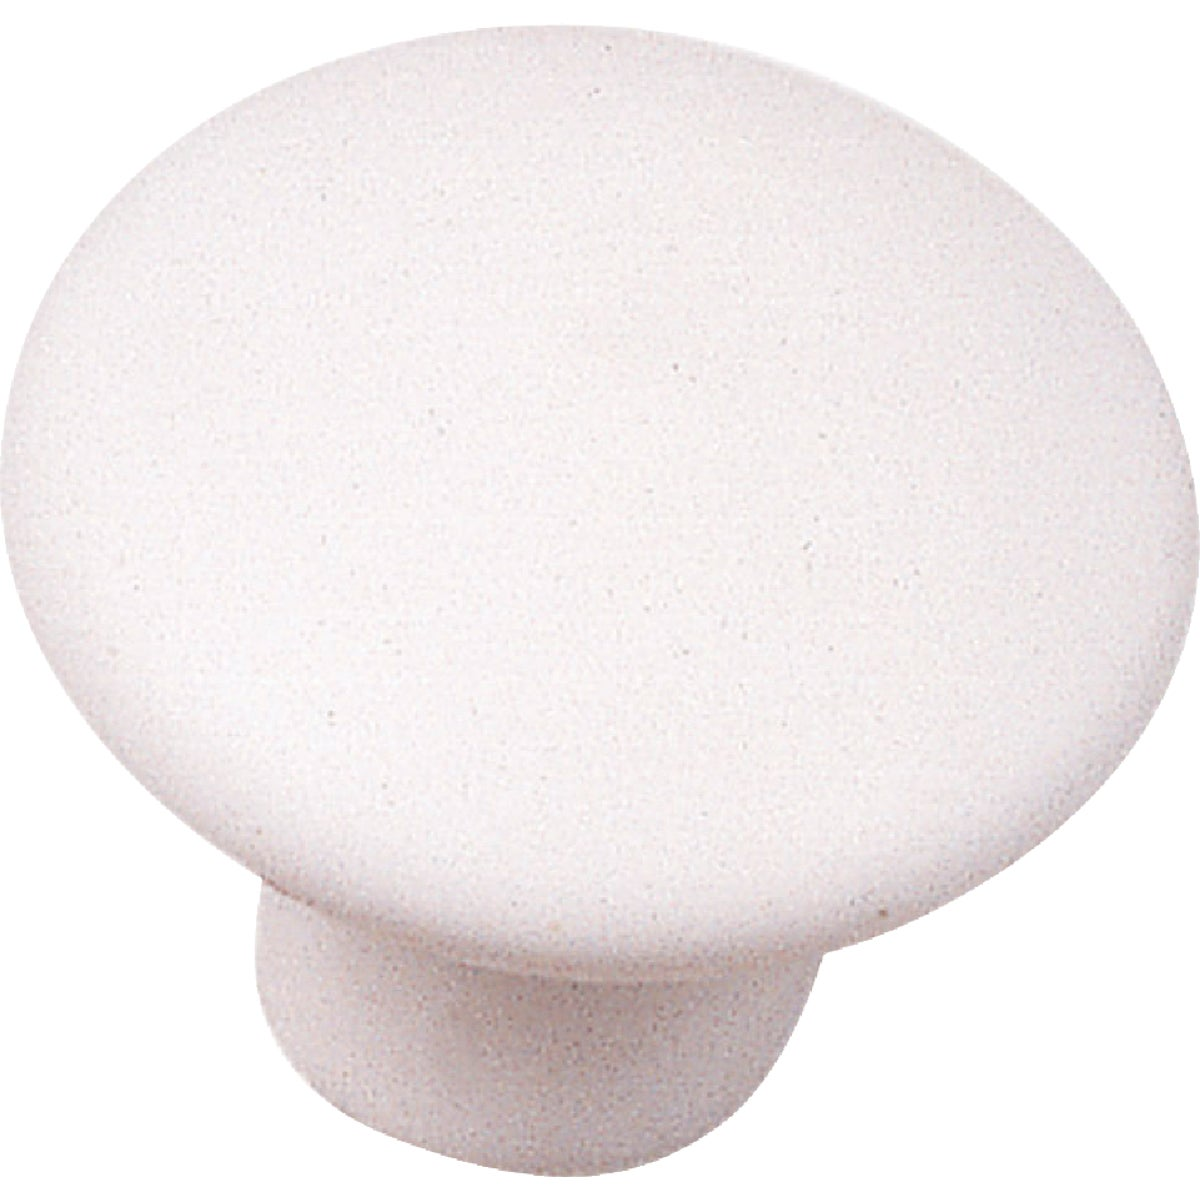 1-3/8 WHT CERAMIC KNOB - 03942 by Laurey Co